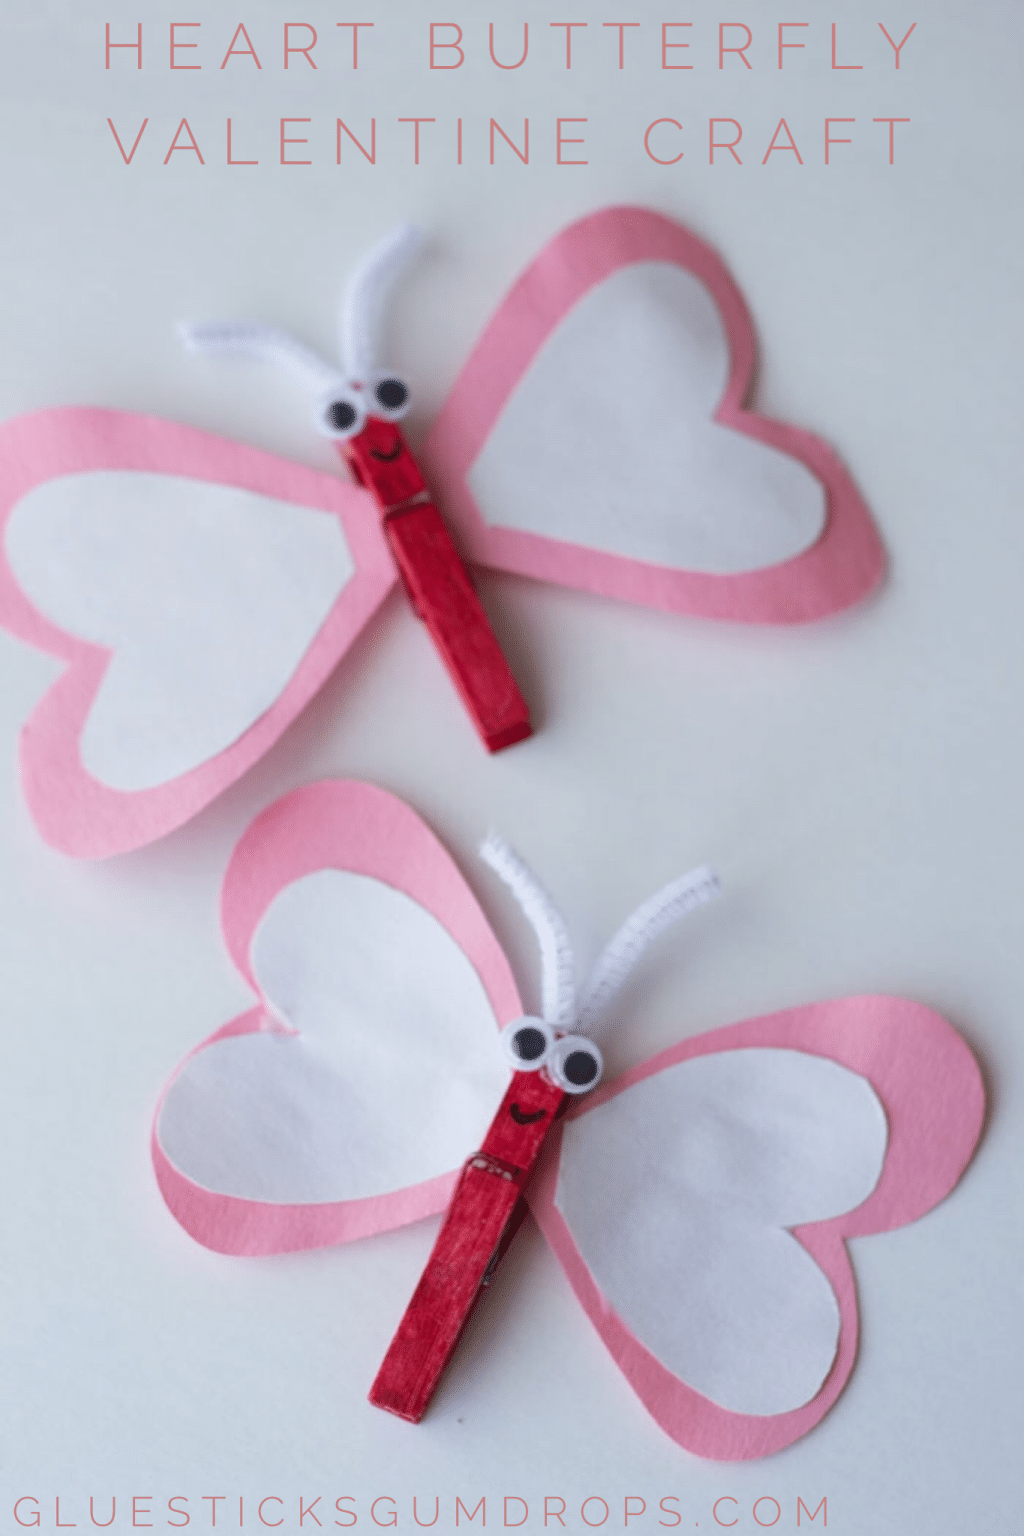 Heart Butterfly Craft for Valentine's Day